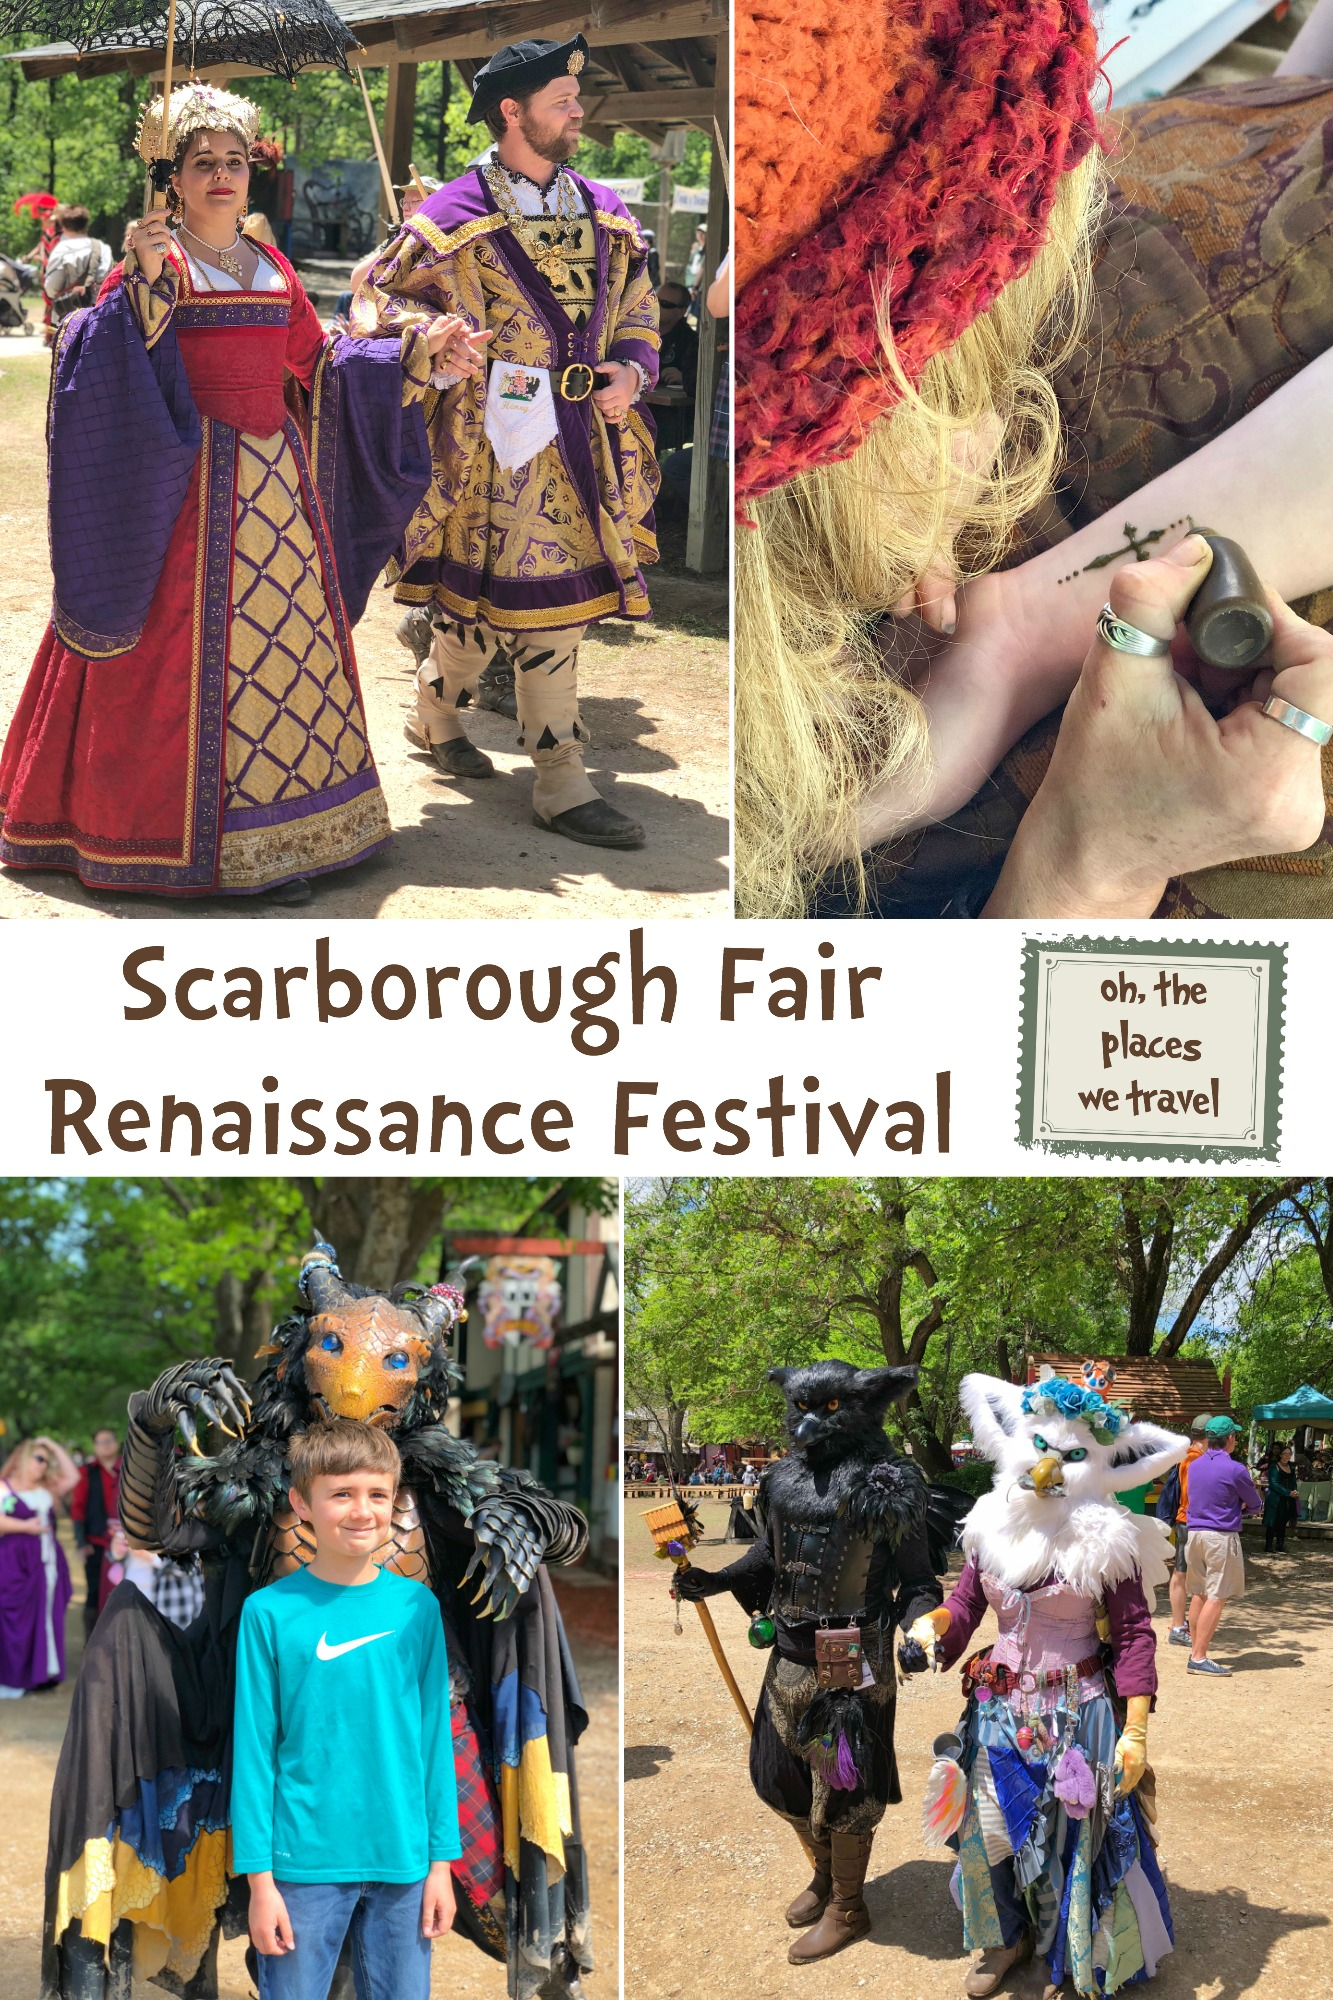 Scarborough Renaissance Festival